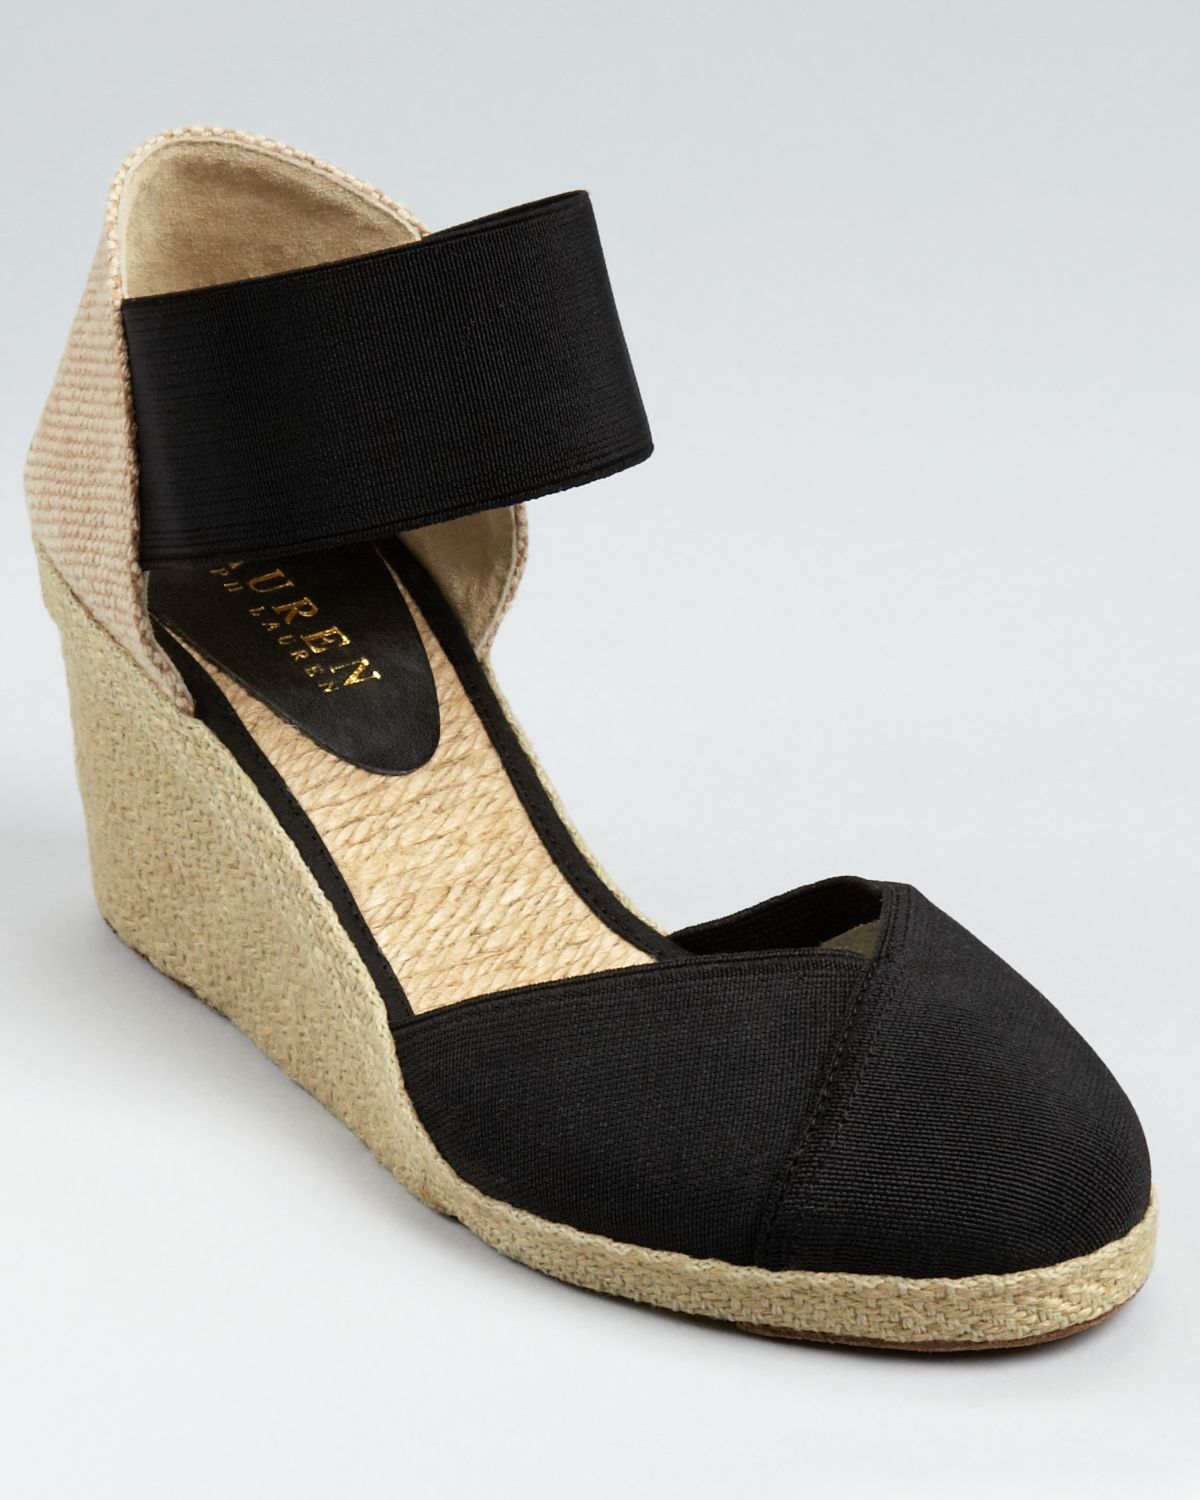 lauren by ralph lauren espadrilles charla wedge in black lyst. Black Bedroom Furniture Sets. Home Design Ideas